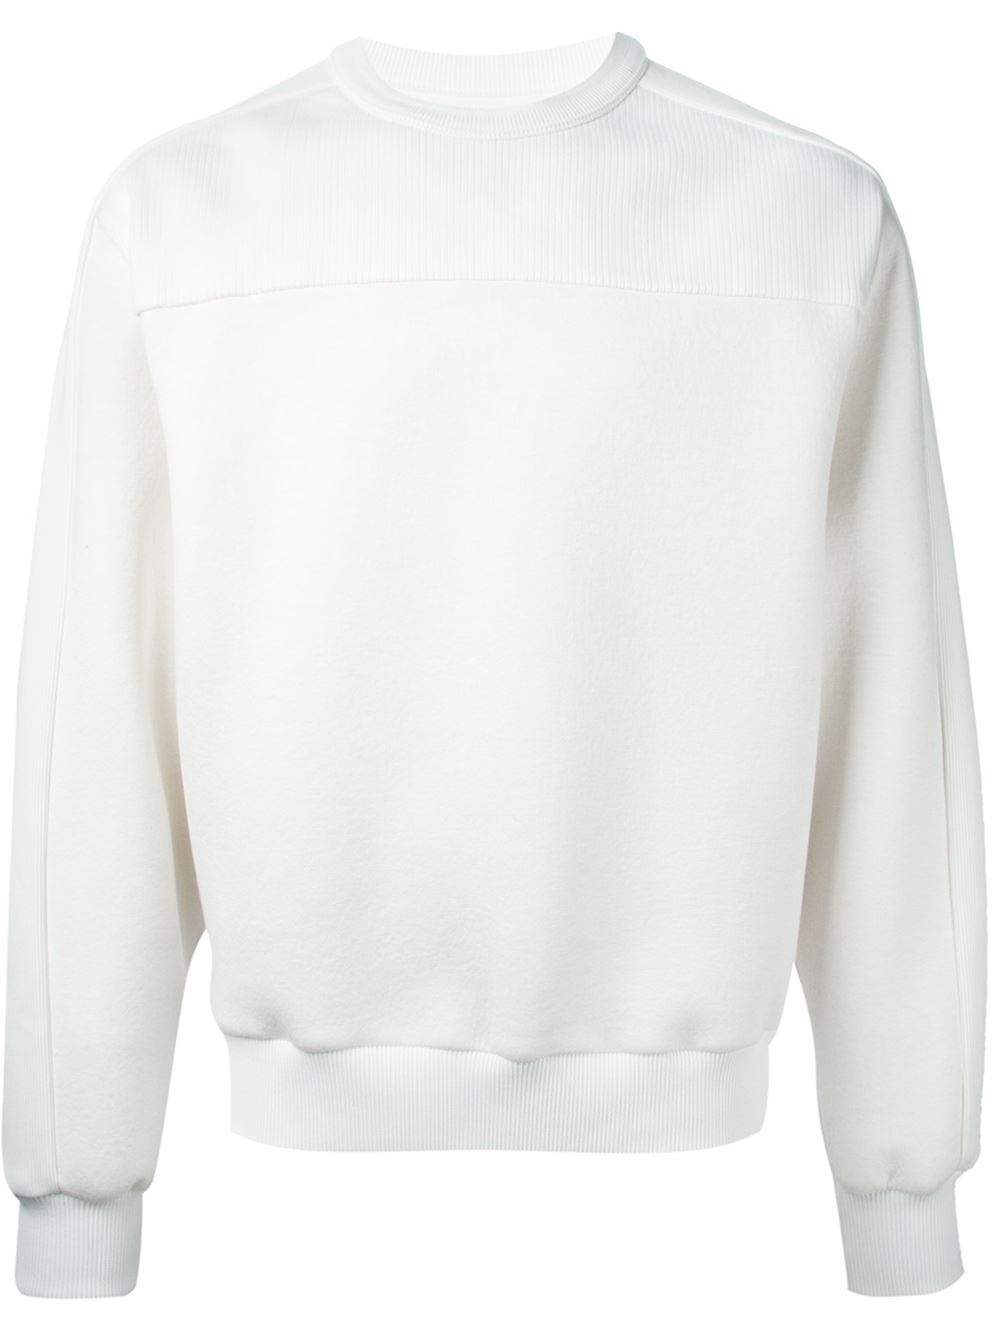 Juun.j Plain And Ribbed Sweatshirt in White for Men